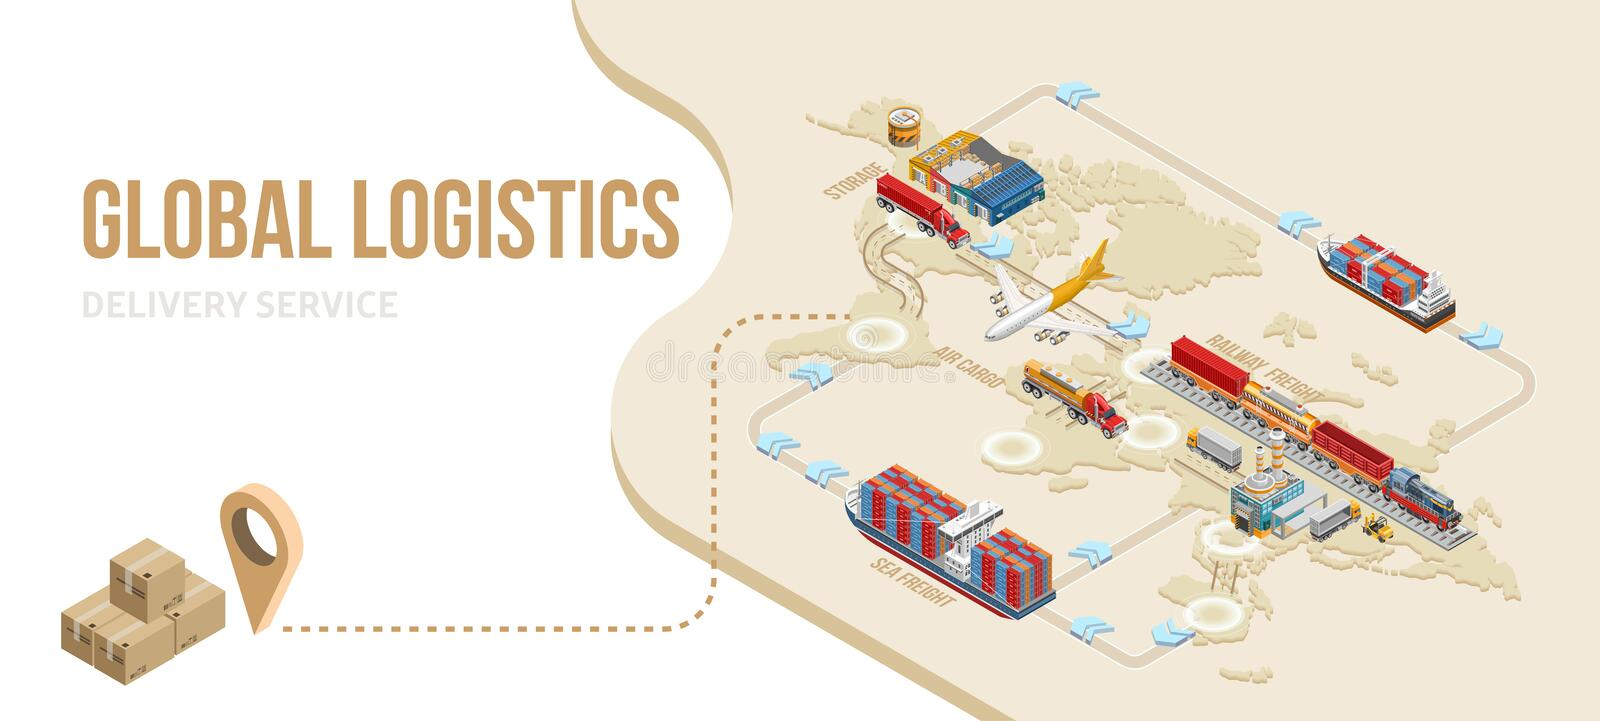 Grafisk intrig av global logistikservice royaltyfri illustrationer